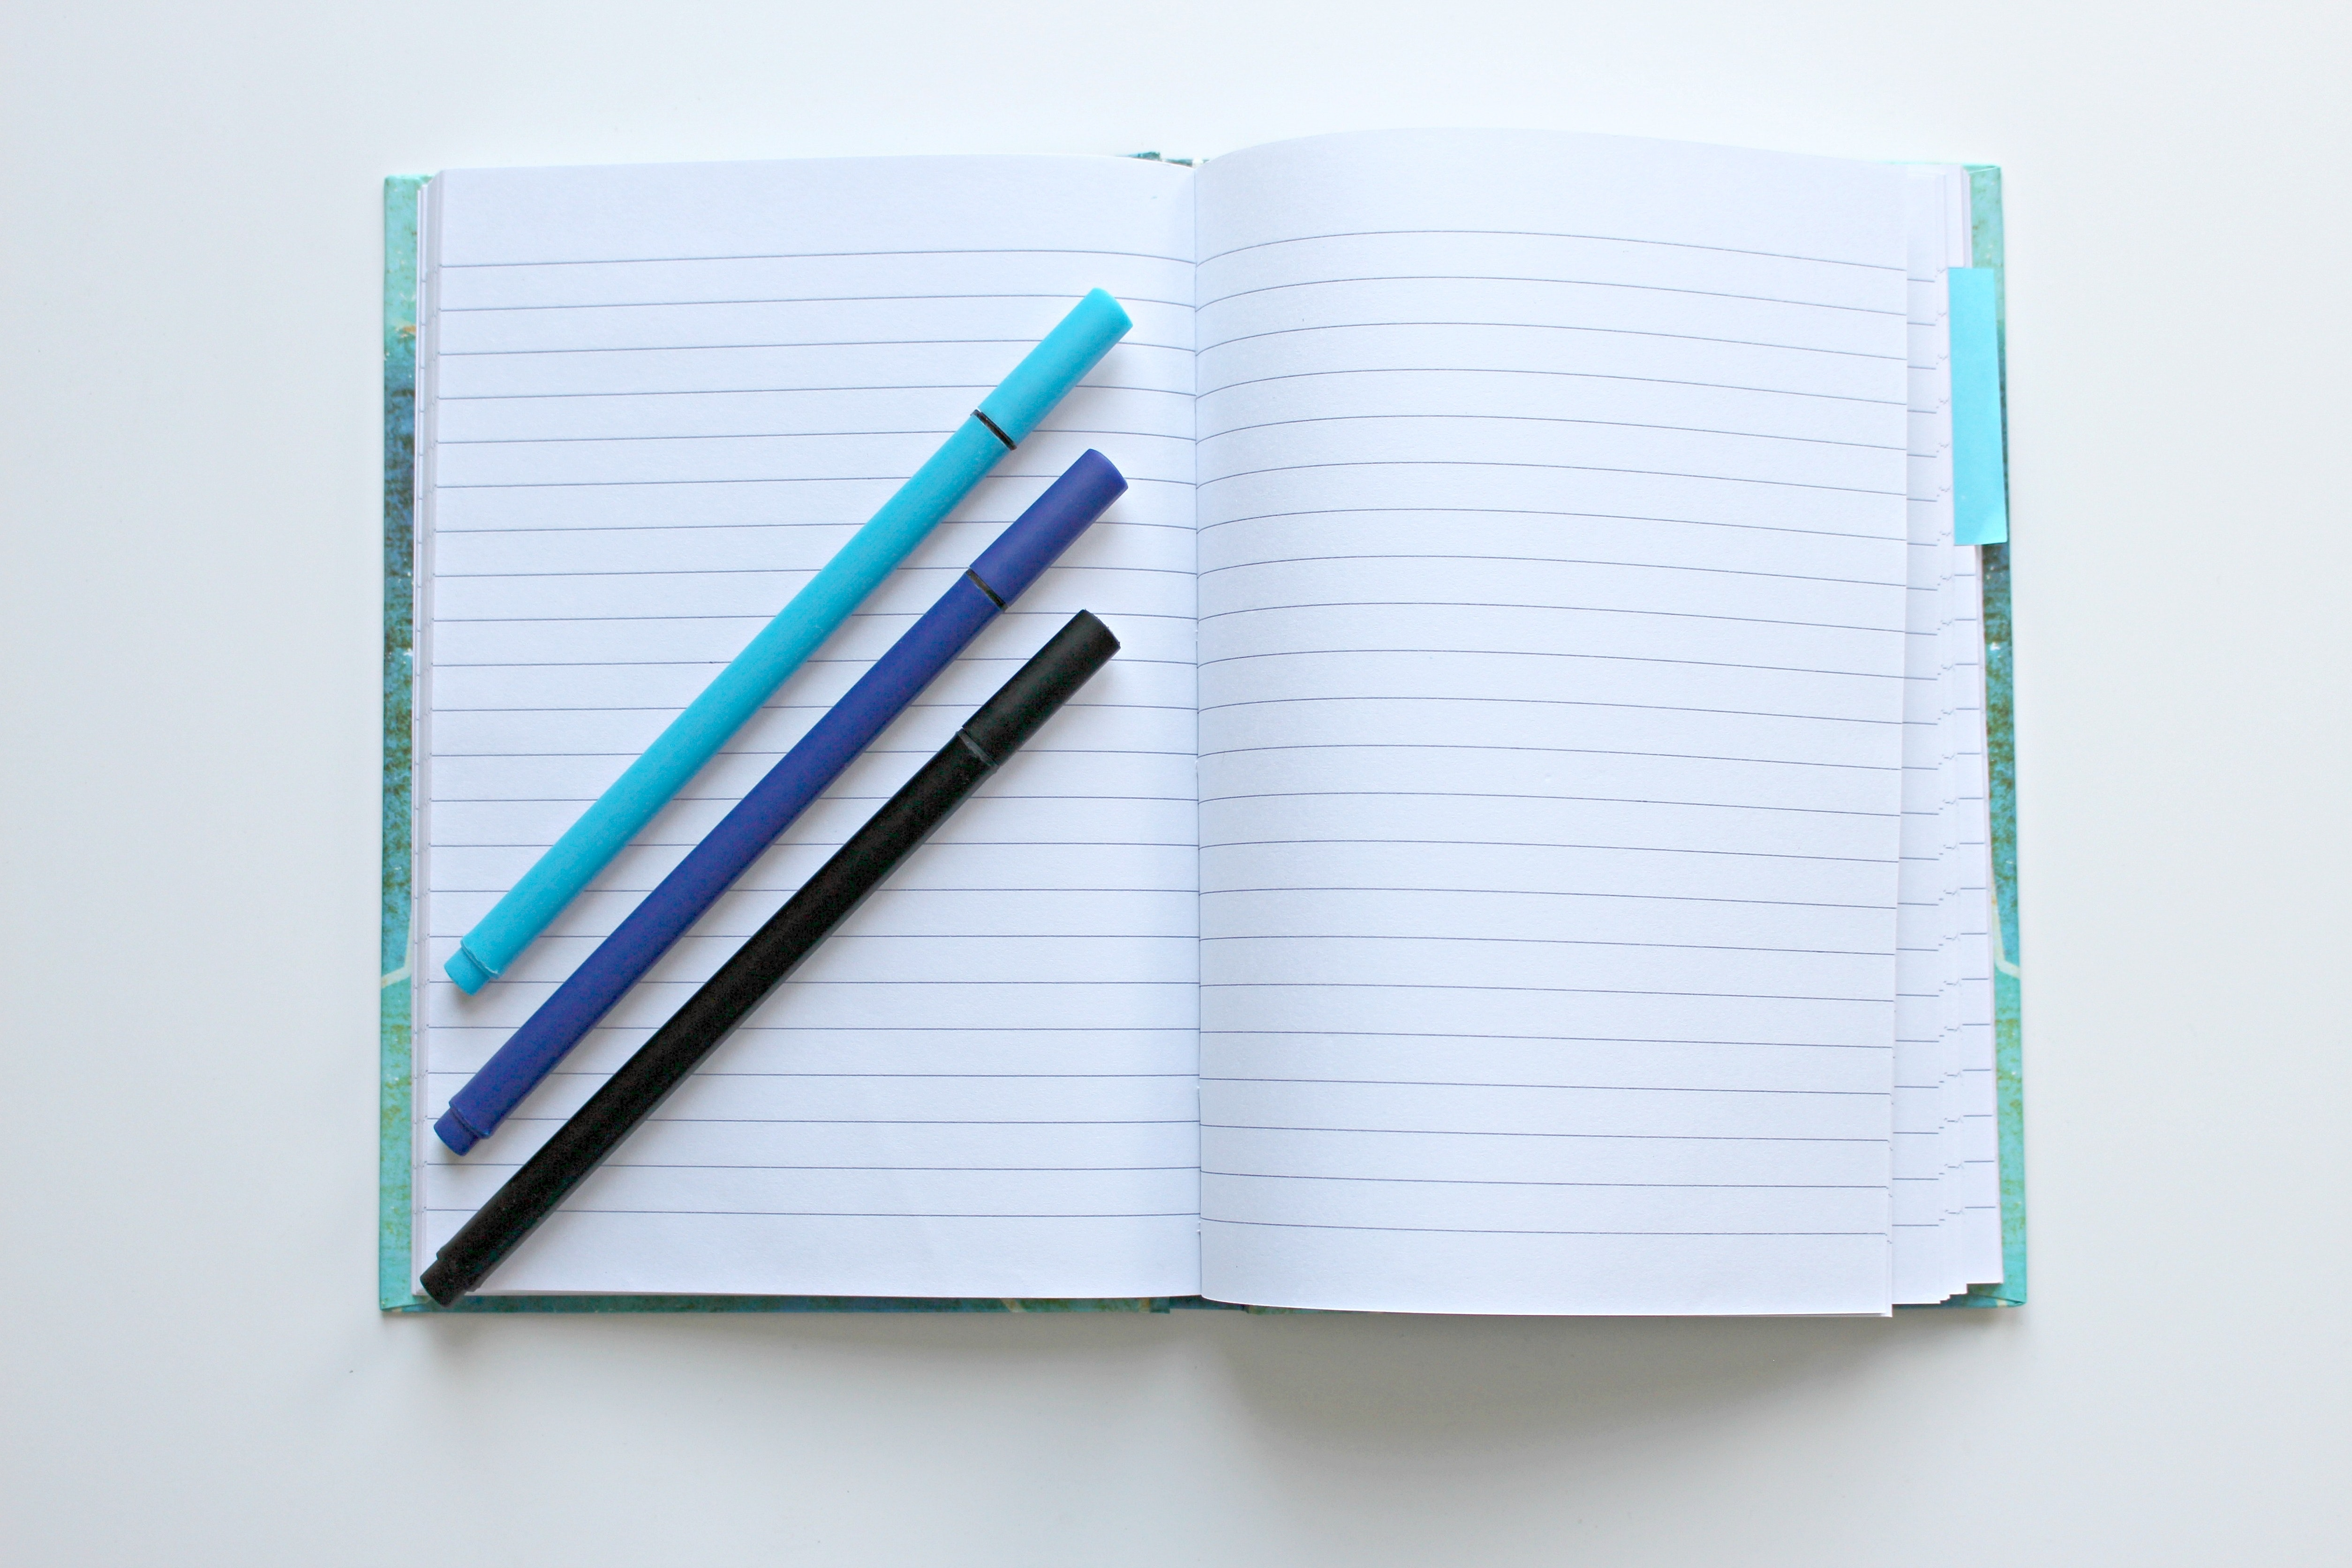 Blank notebook with pens